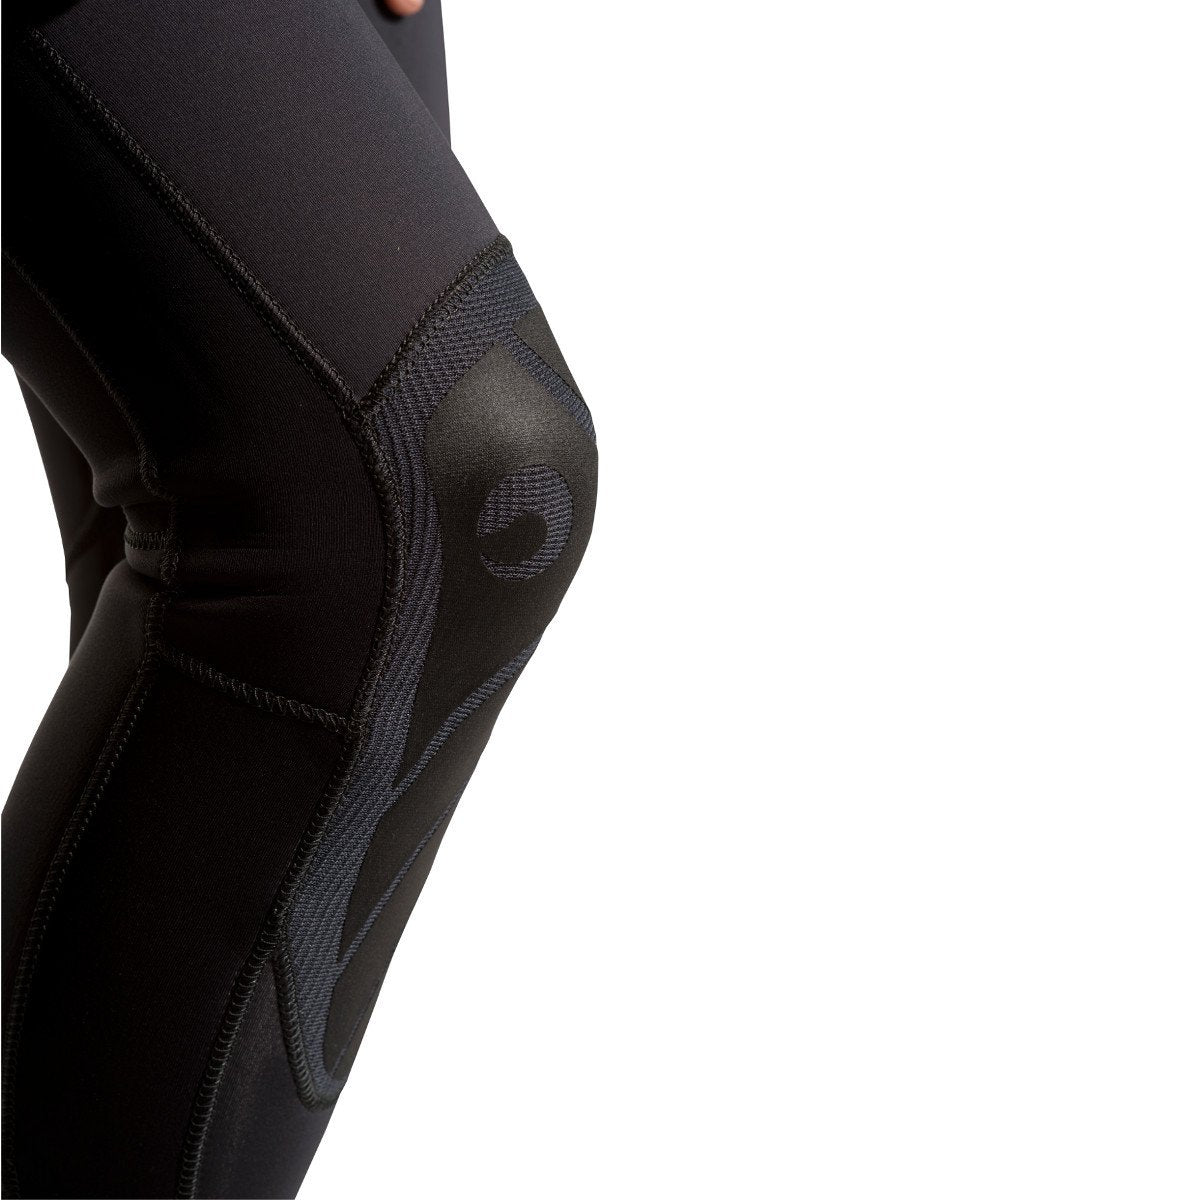 cb9f653f33 ... Xenos 3mm Wetsuit  Womens - Oyster Diving Equipment ...